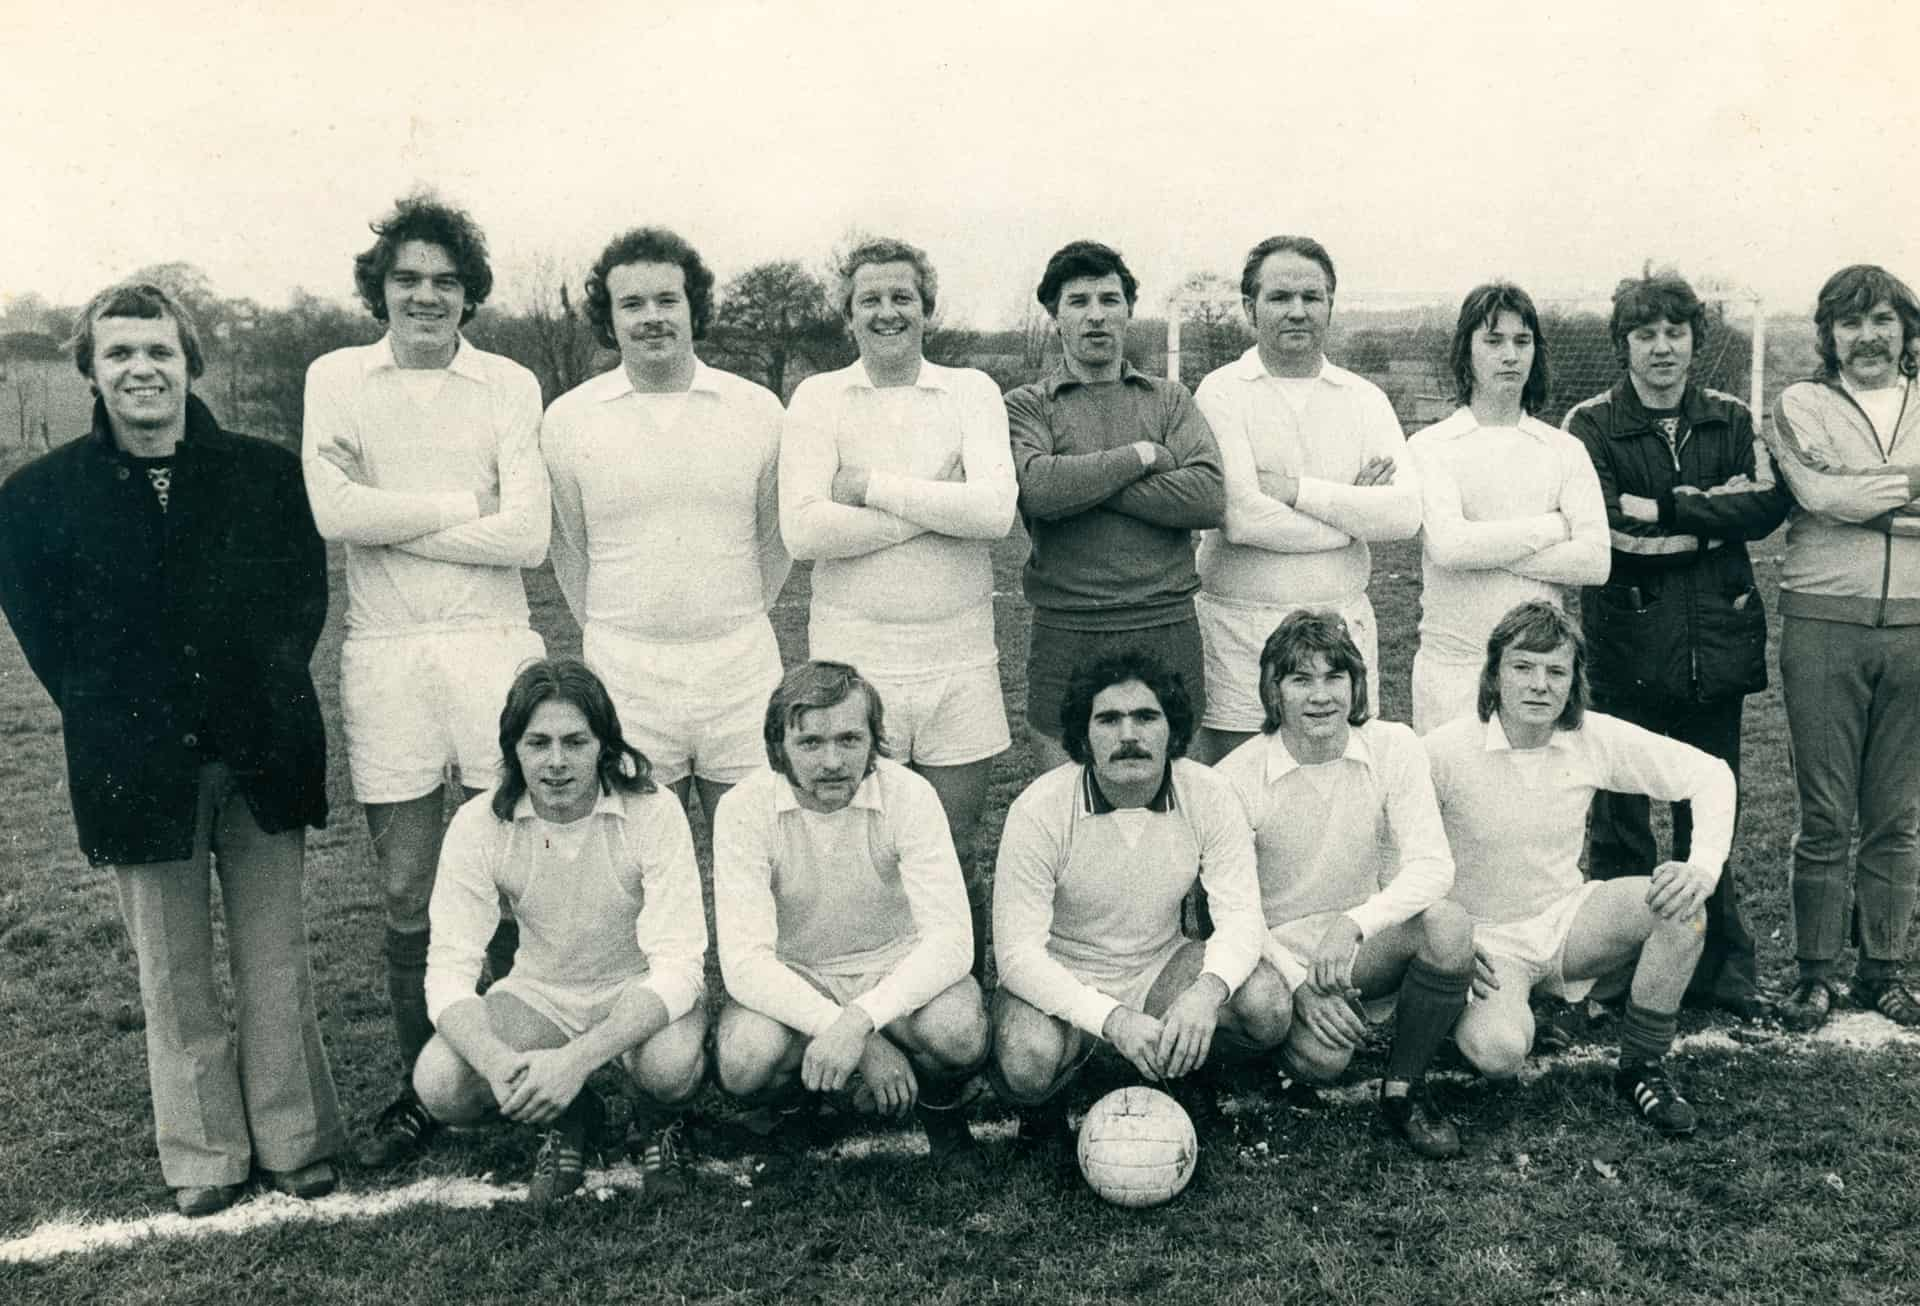 Simplex Football Team late 1970s, I am front row, second from the left.